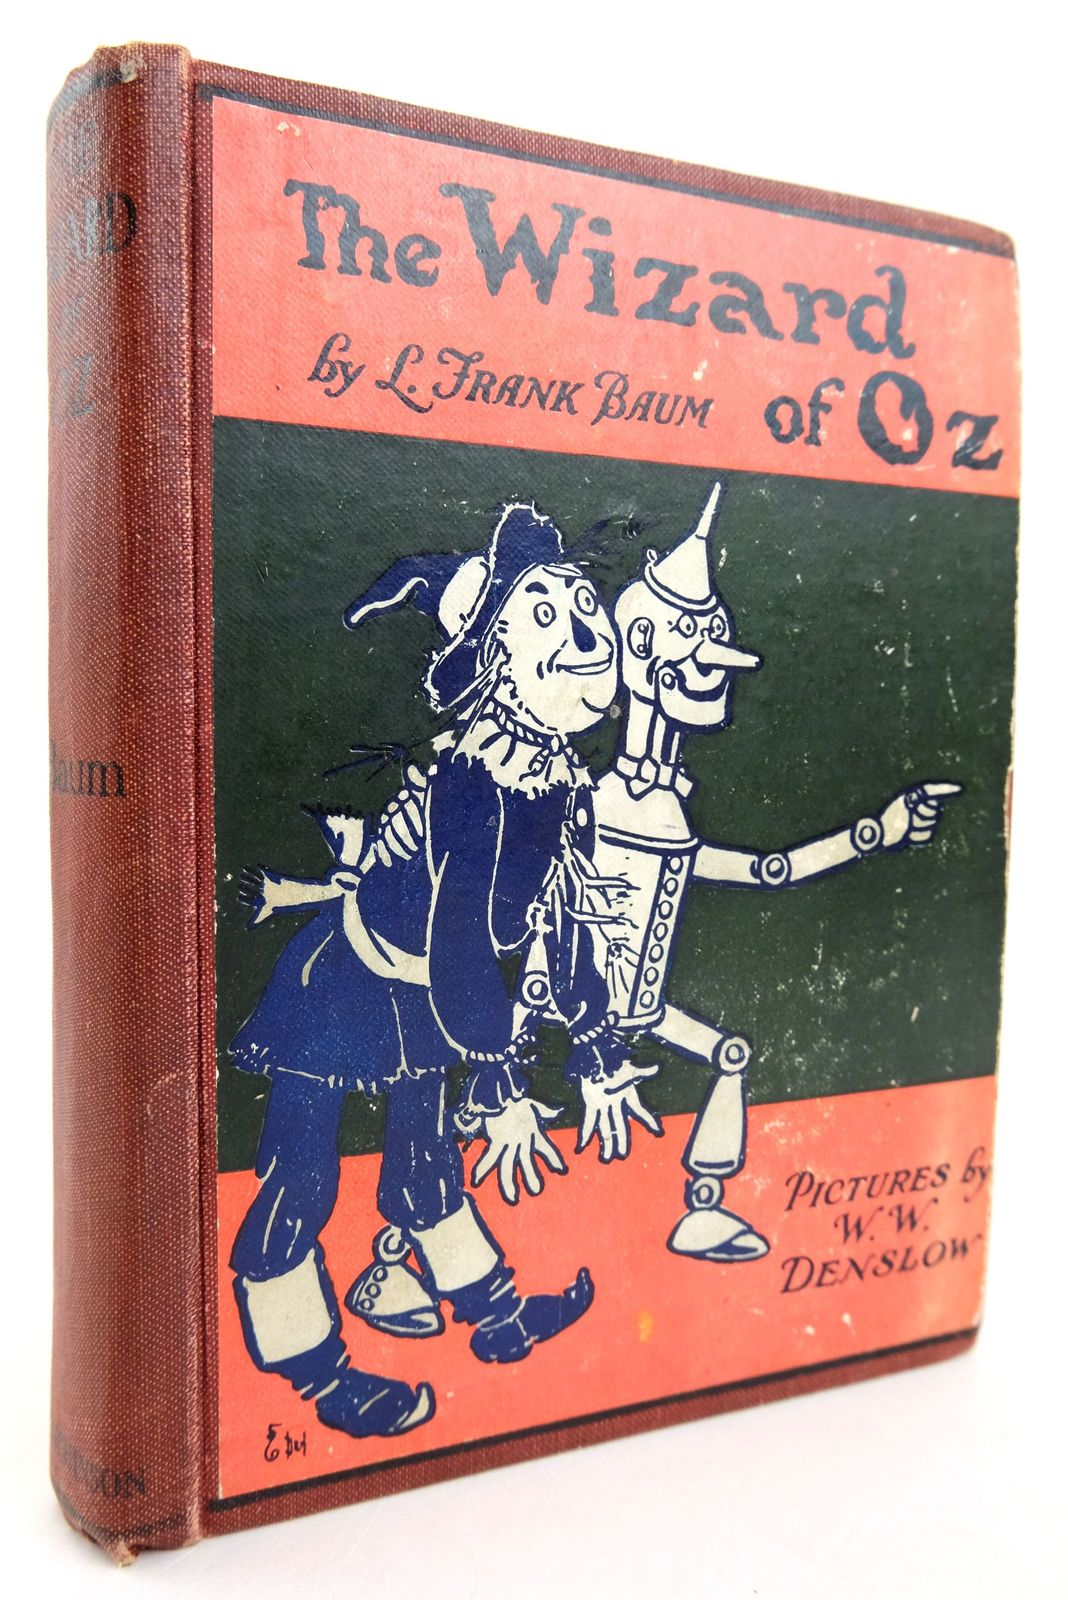 Photo of THE WIZARD OF OZ- Stock Number: 1819312